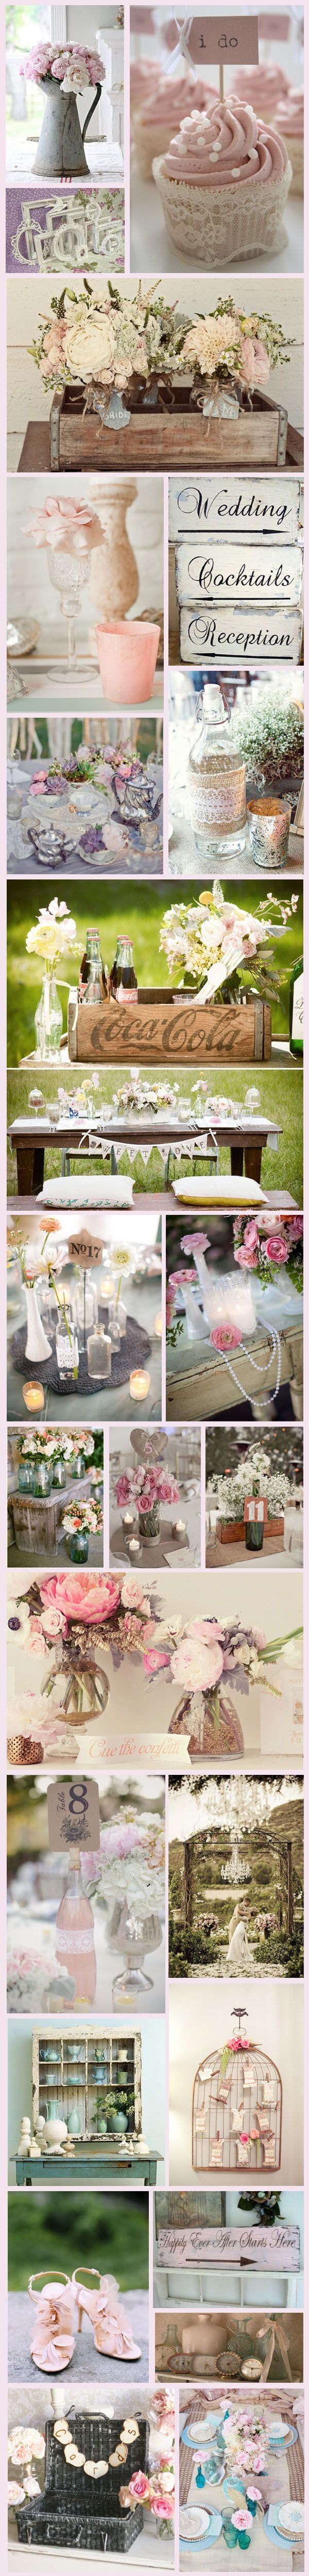 Best 25 Pastel wedding theme ideas on Pinterest